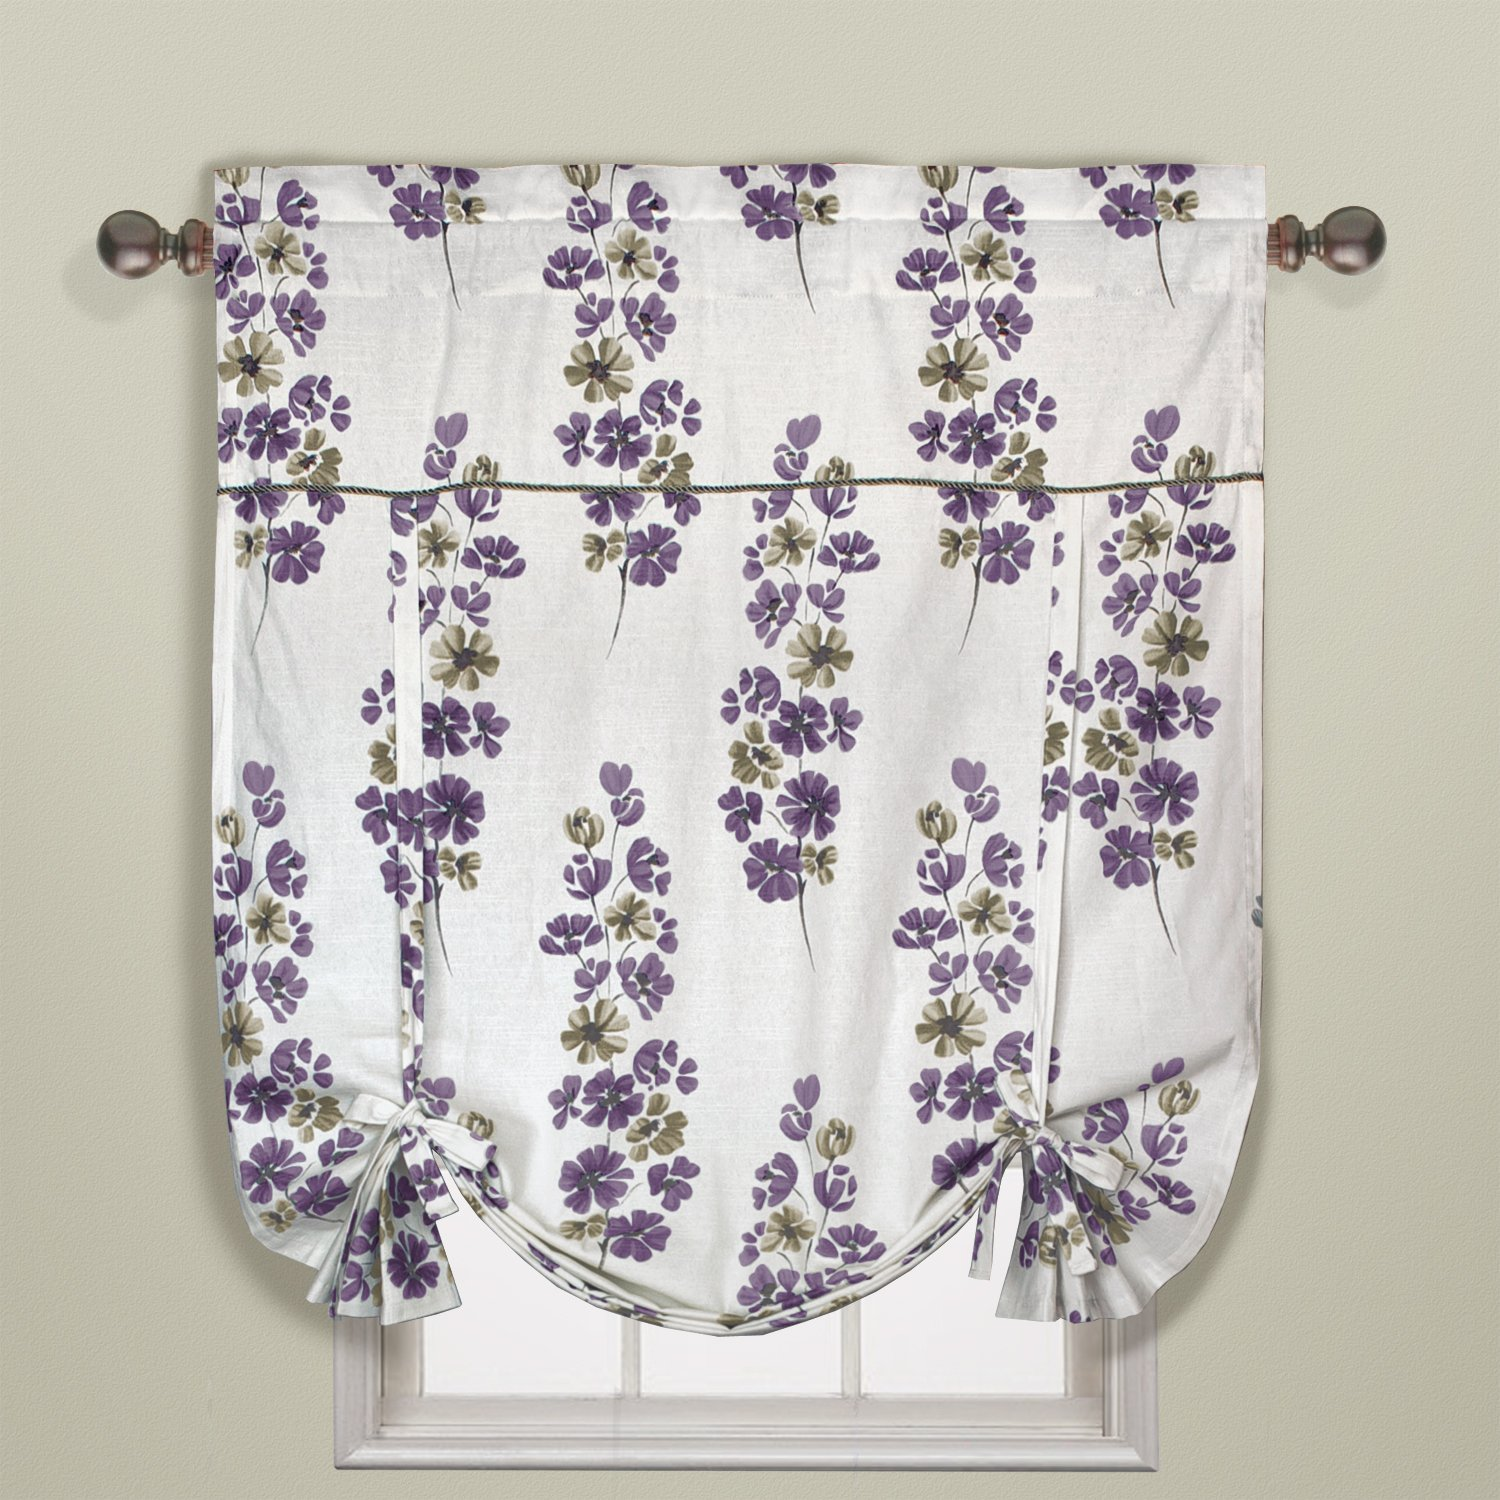 70 by 72-Inch United Curtain Chelsea Shower Curtain Amethyst UCSHOWCHLAM